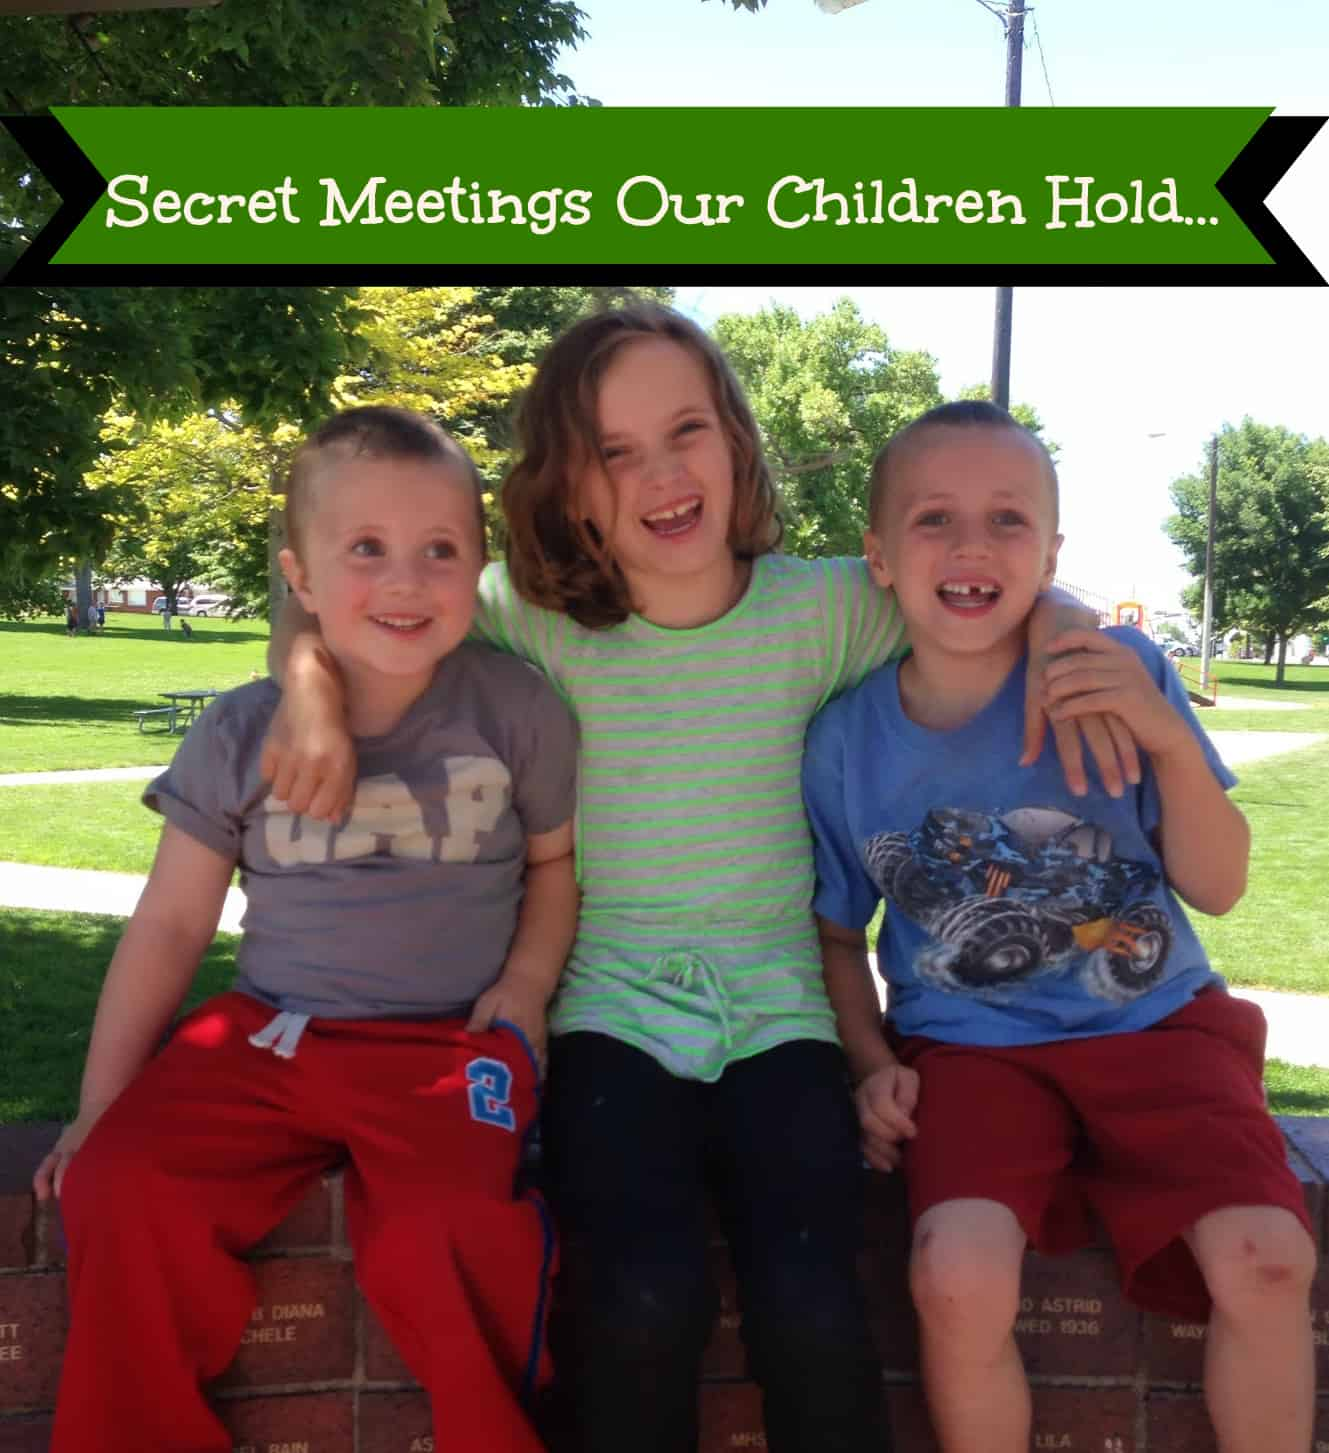 Secret Meetings Our Children Hold….and All Those Buttons They PUSH! #Whynotmom